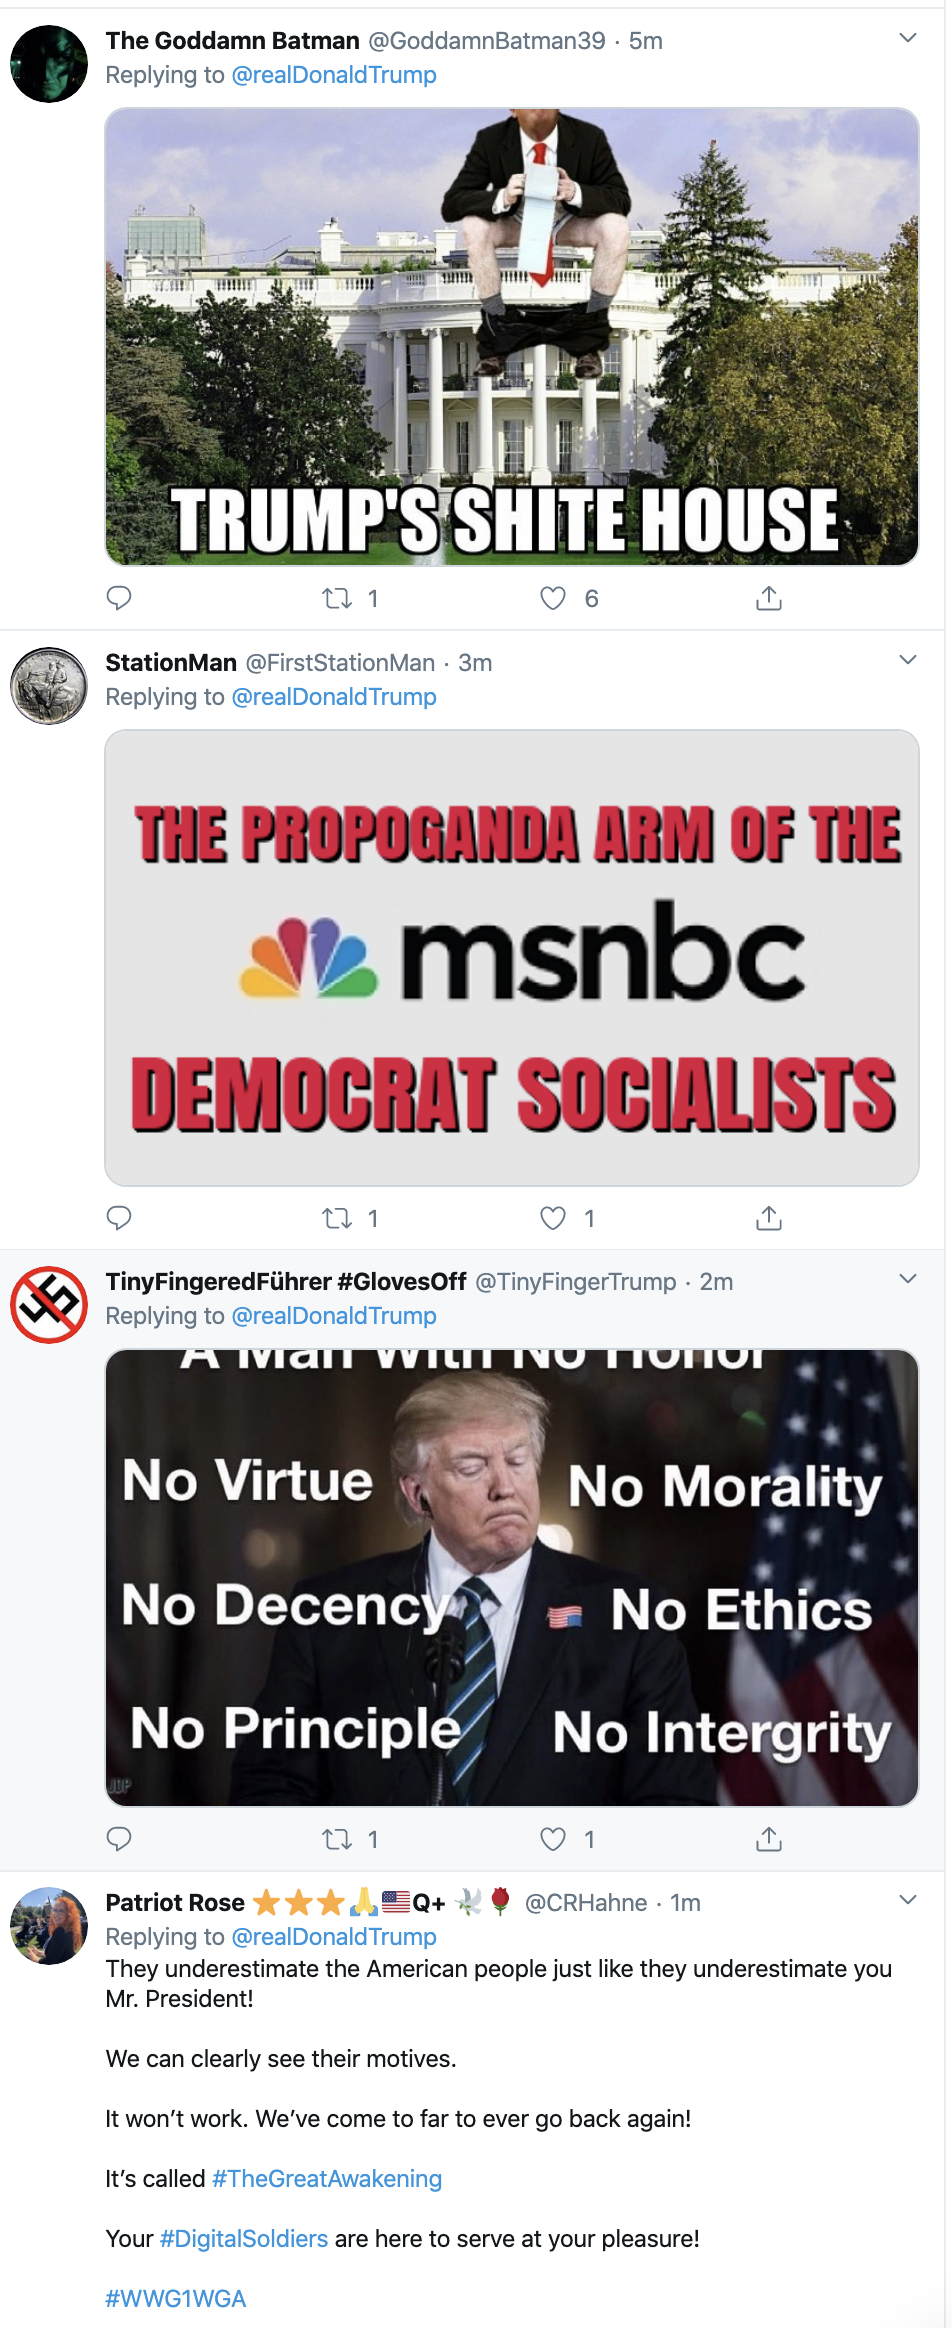 Screen-Shot-2020-03-08-at-7.53.16-AM Trump Says Media Lying About Coronavirus On Twitter Featured Healthcare National Security Politics Top Stories